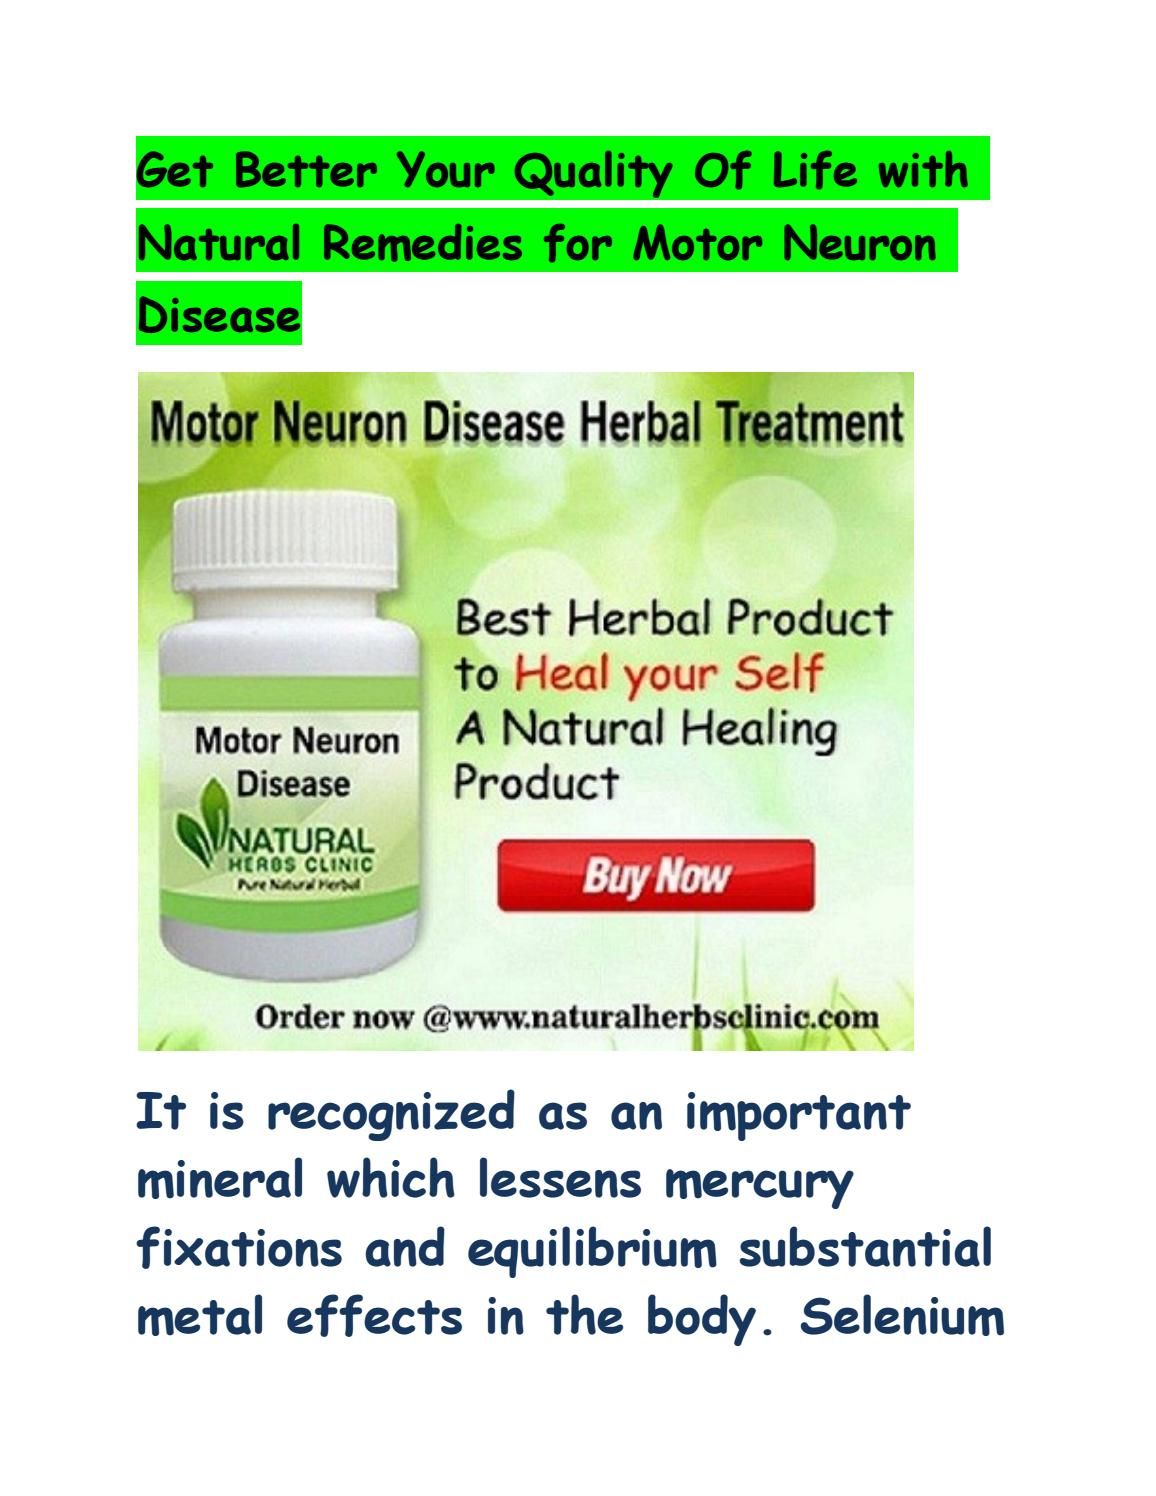 Natural Remedies by Natural Herbs Clinic